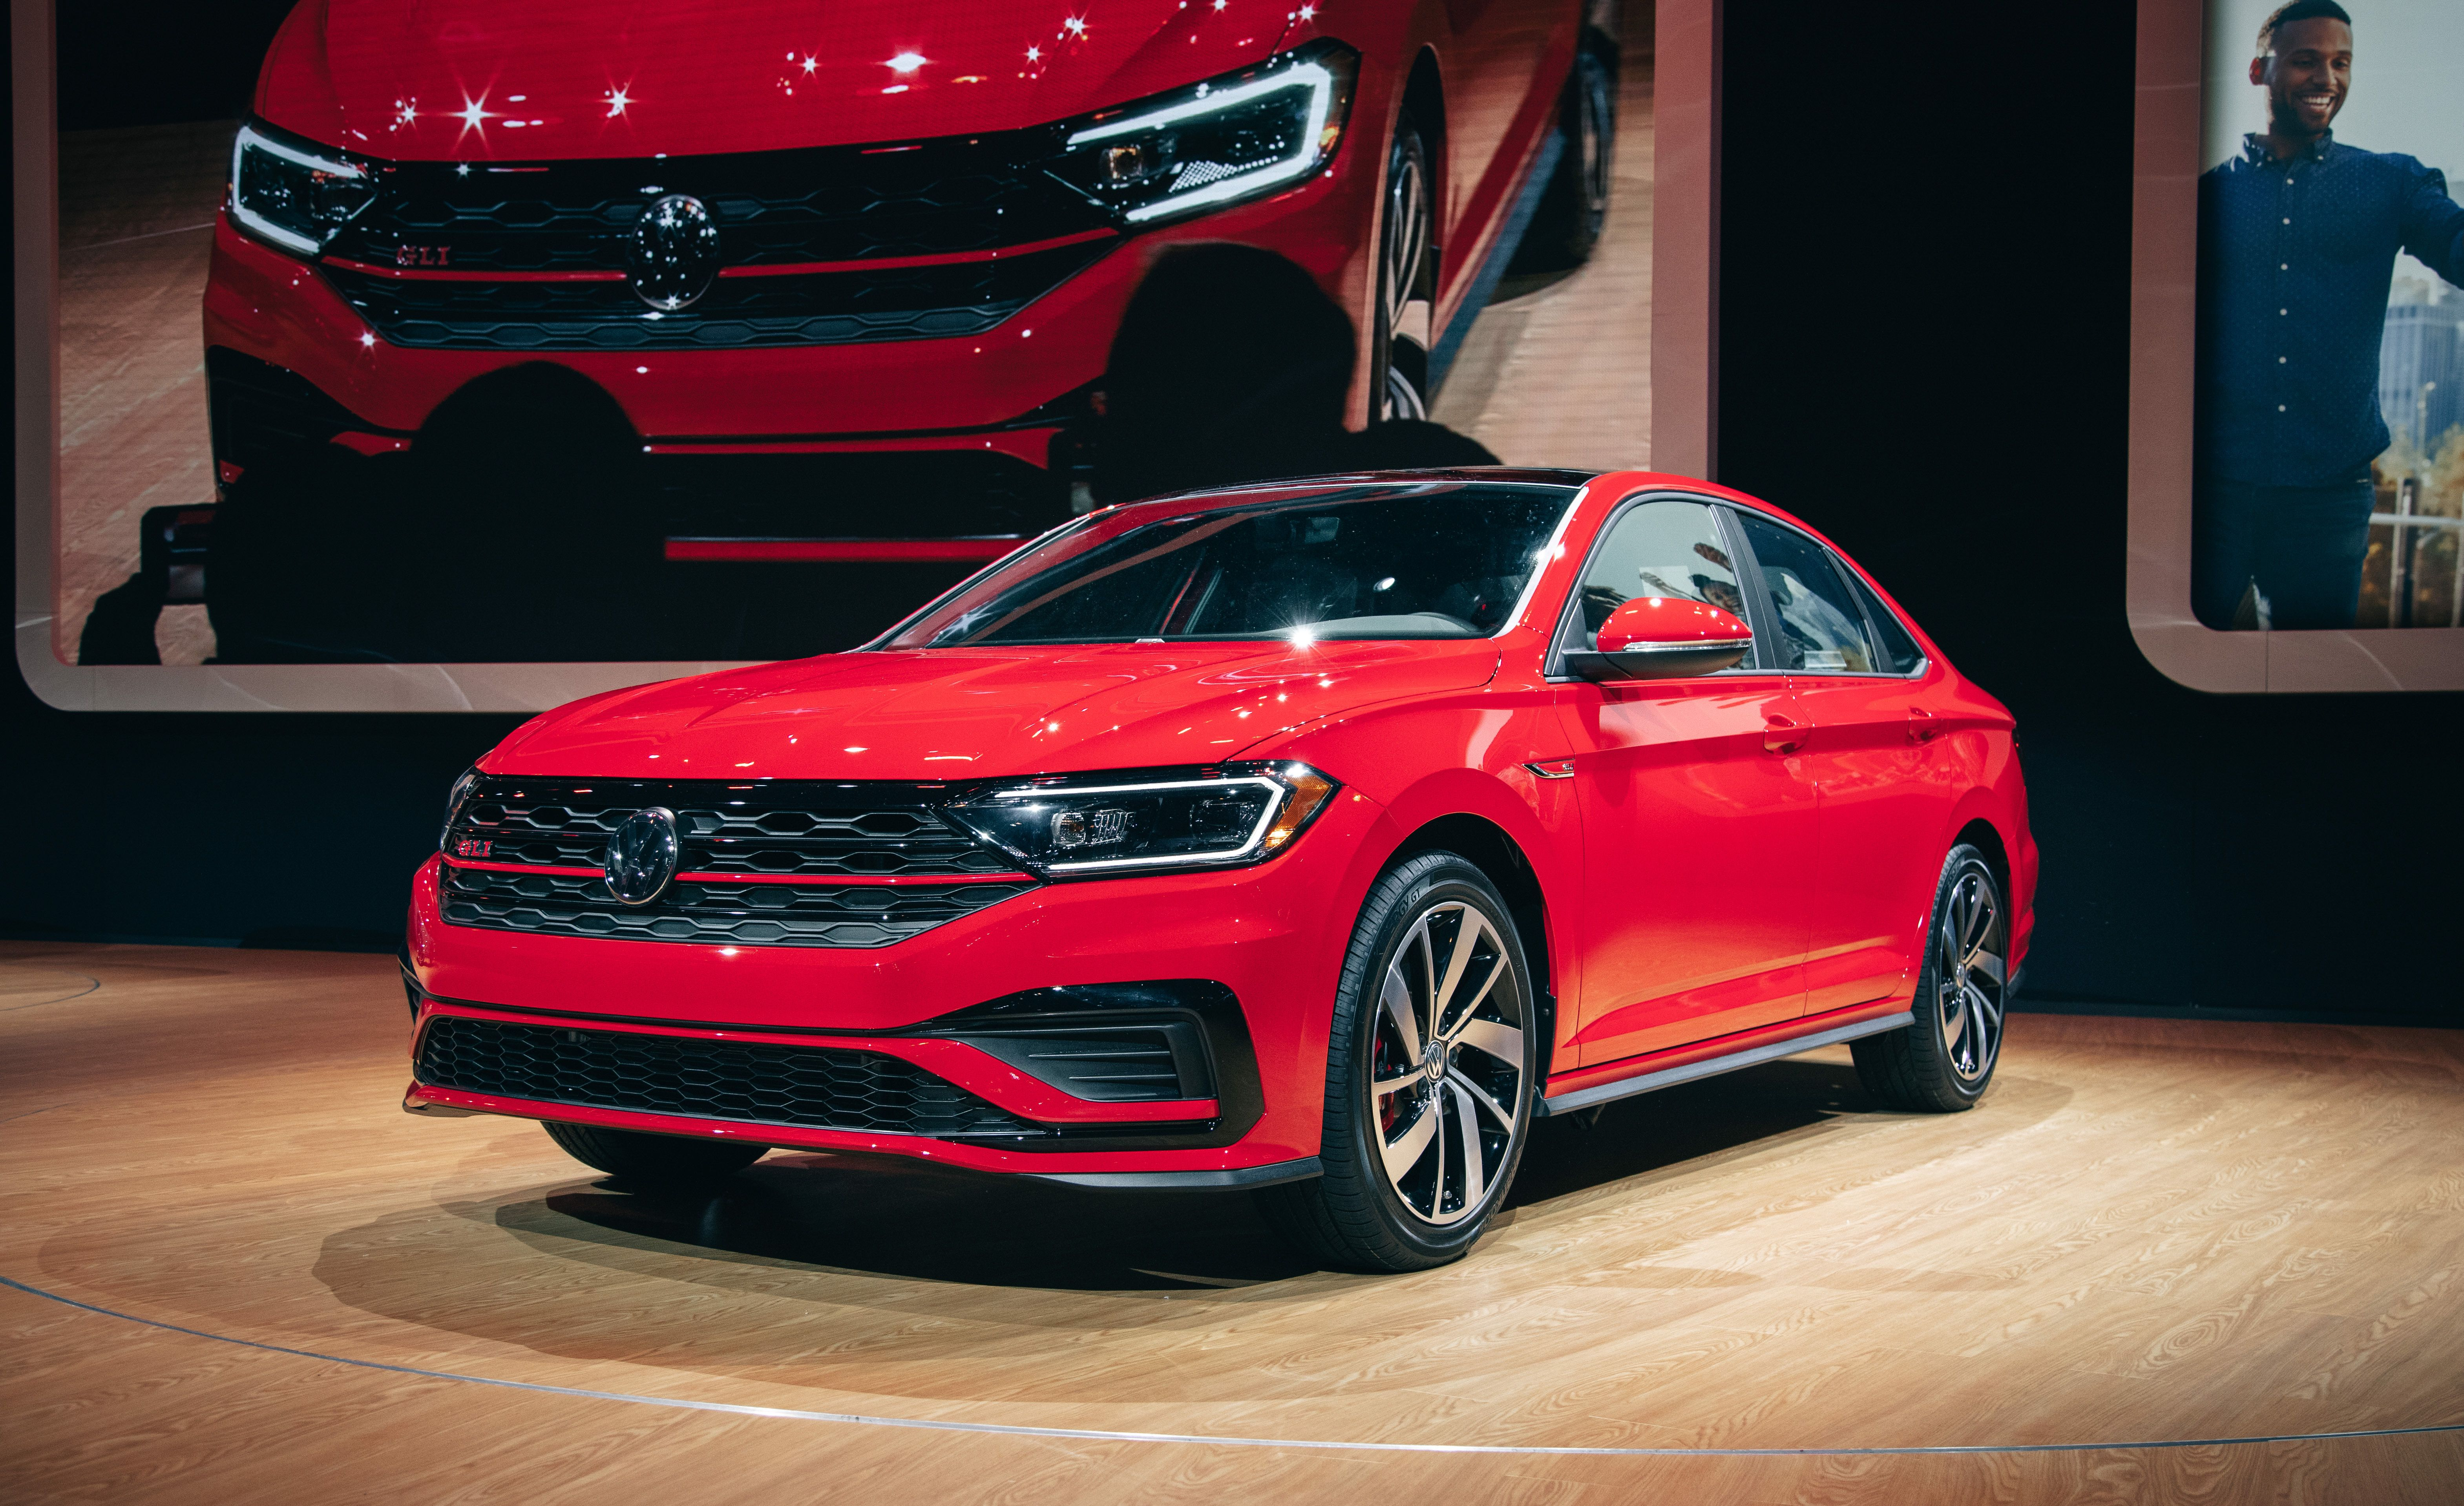 The 2019 Volkswagen Jetta GLI Finally Gets All of the GTI's Performance Goodies